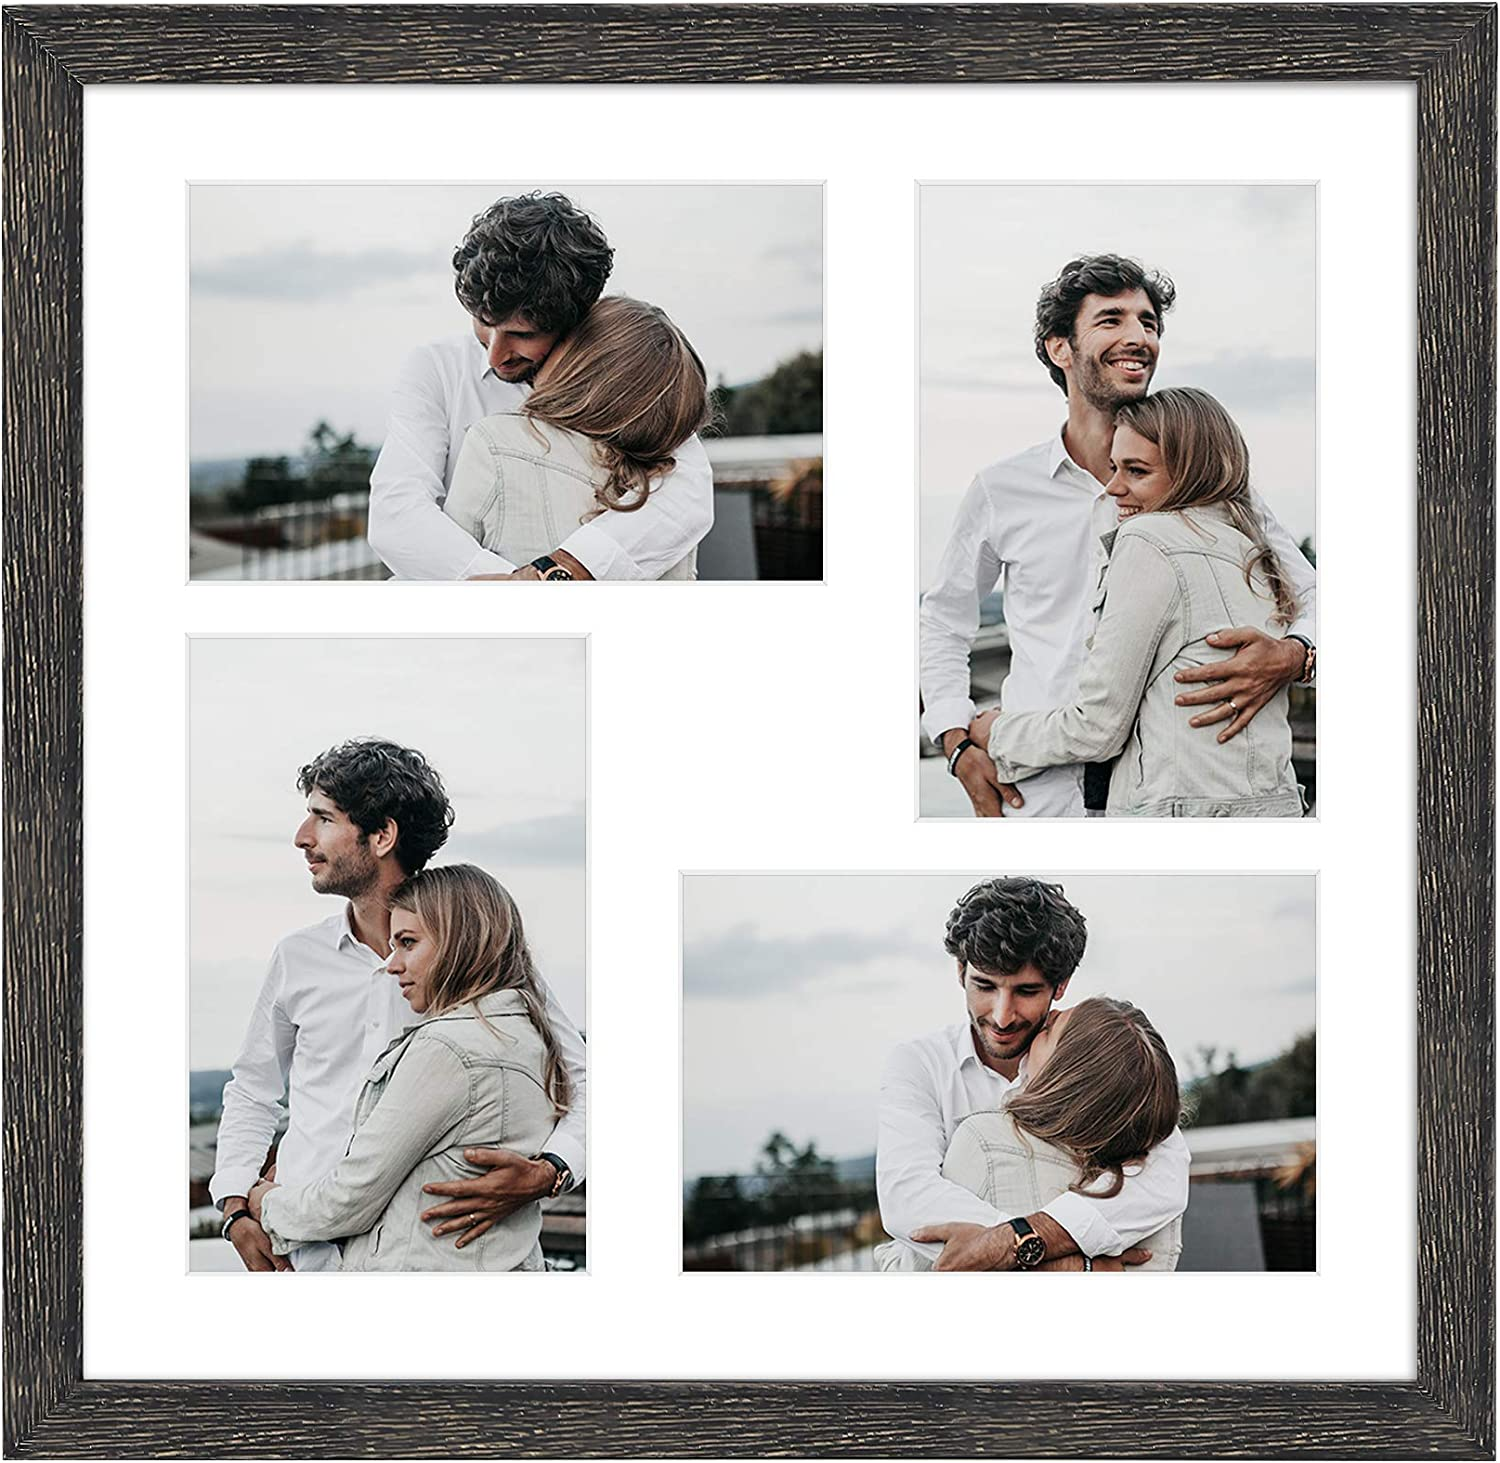 Amazon Com Golden State Art 12x12 Distressed Black Wooden Frame With White Mat Displays Four 4x6 Photos Square Collage Frame Real Glass Sawtooth Hanger Swivel Tabs Wall Mounting Landscape Portrait